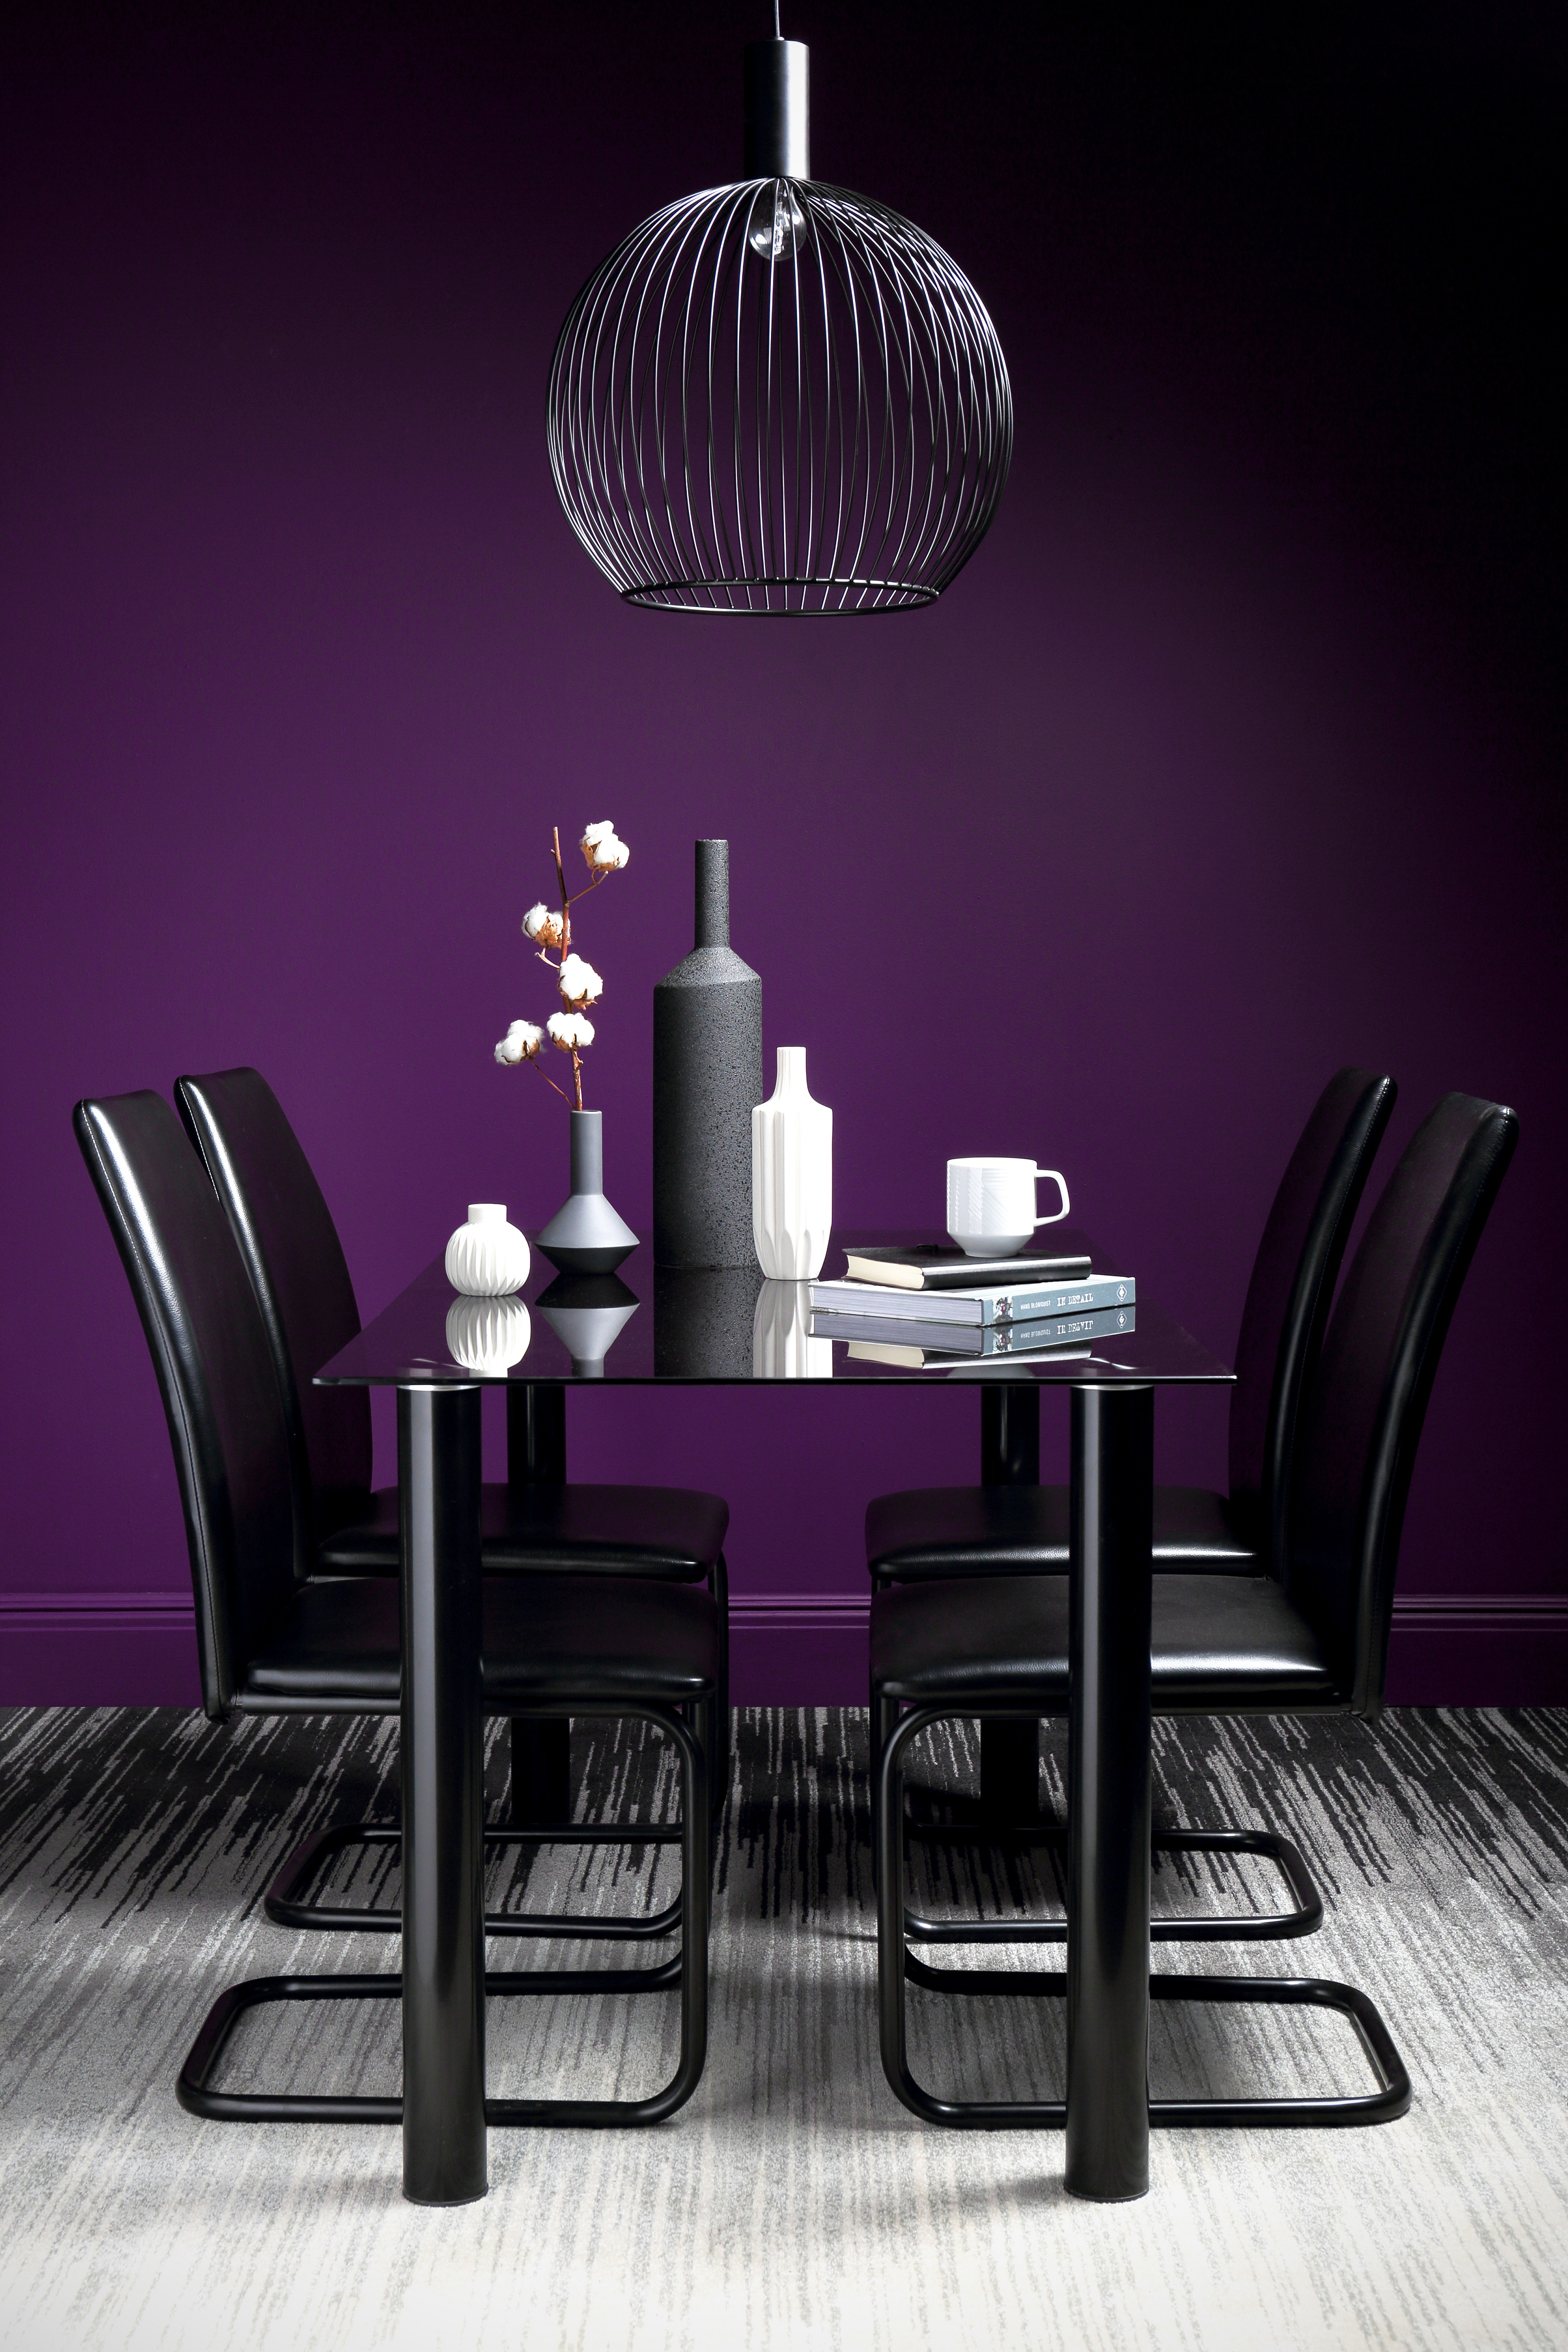 Lunar Black Glass Dining Table with 4 Pica Chairs (also available in purple), currently reduced to £199.99 from £299.99, Furniture Choice (Furniture Choice/PA)